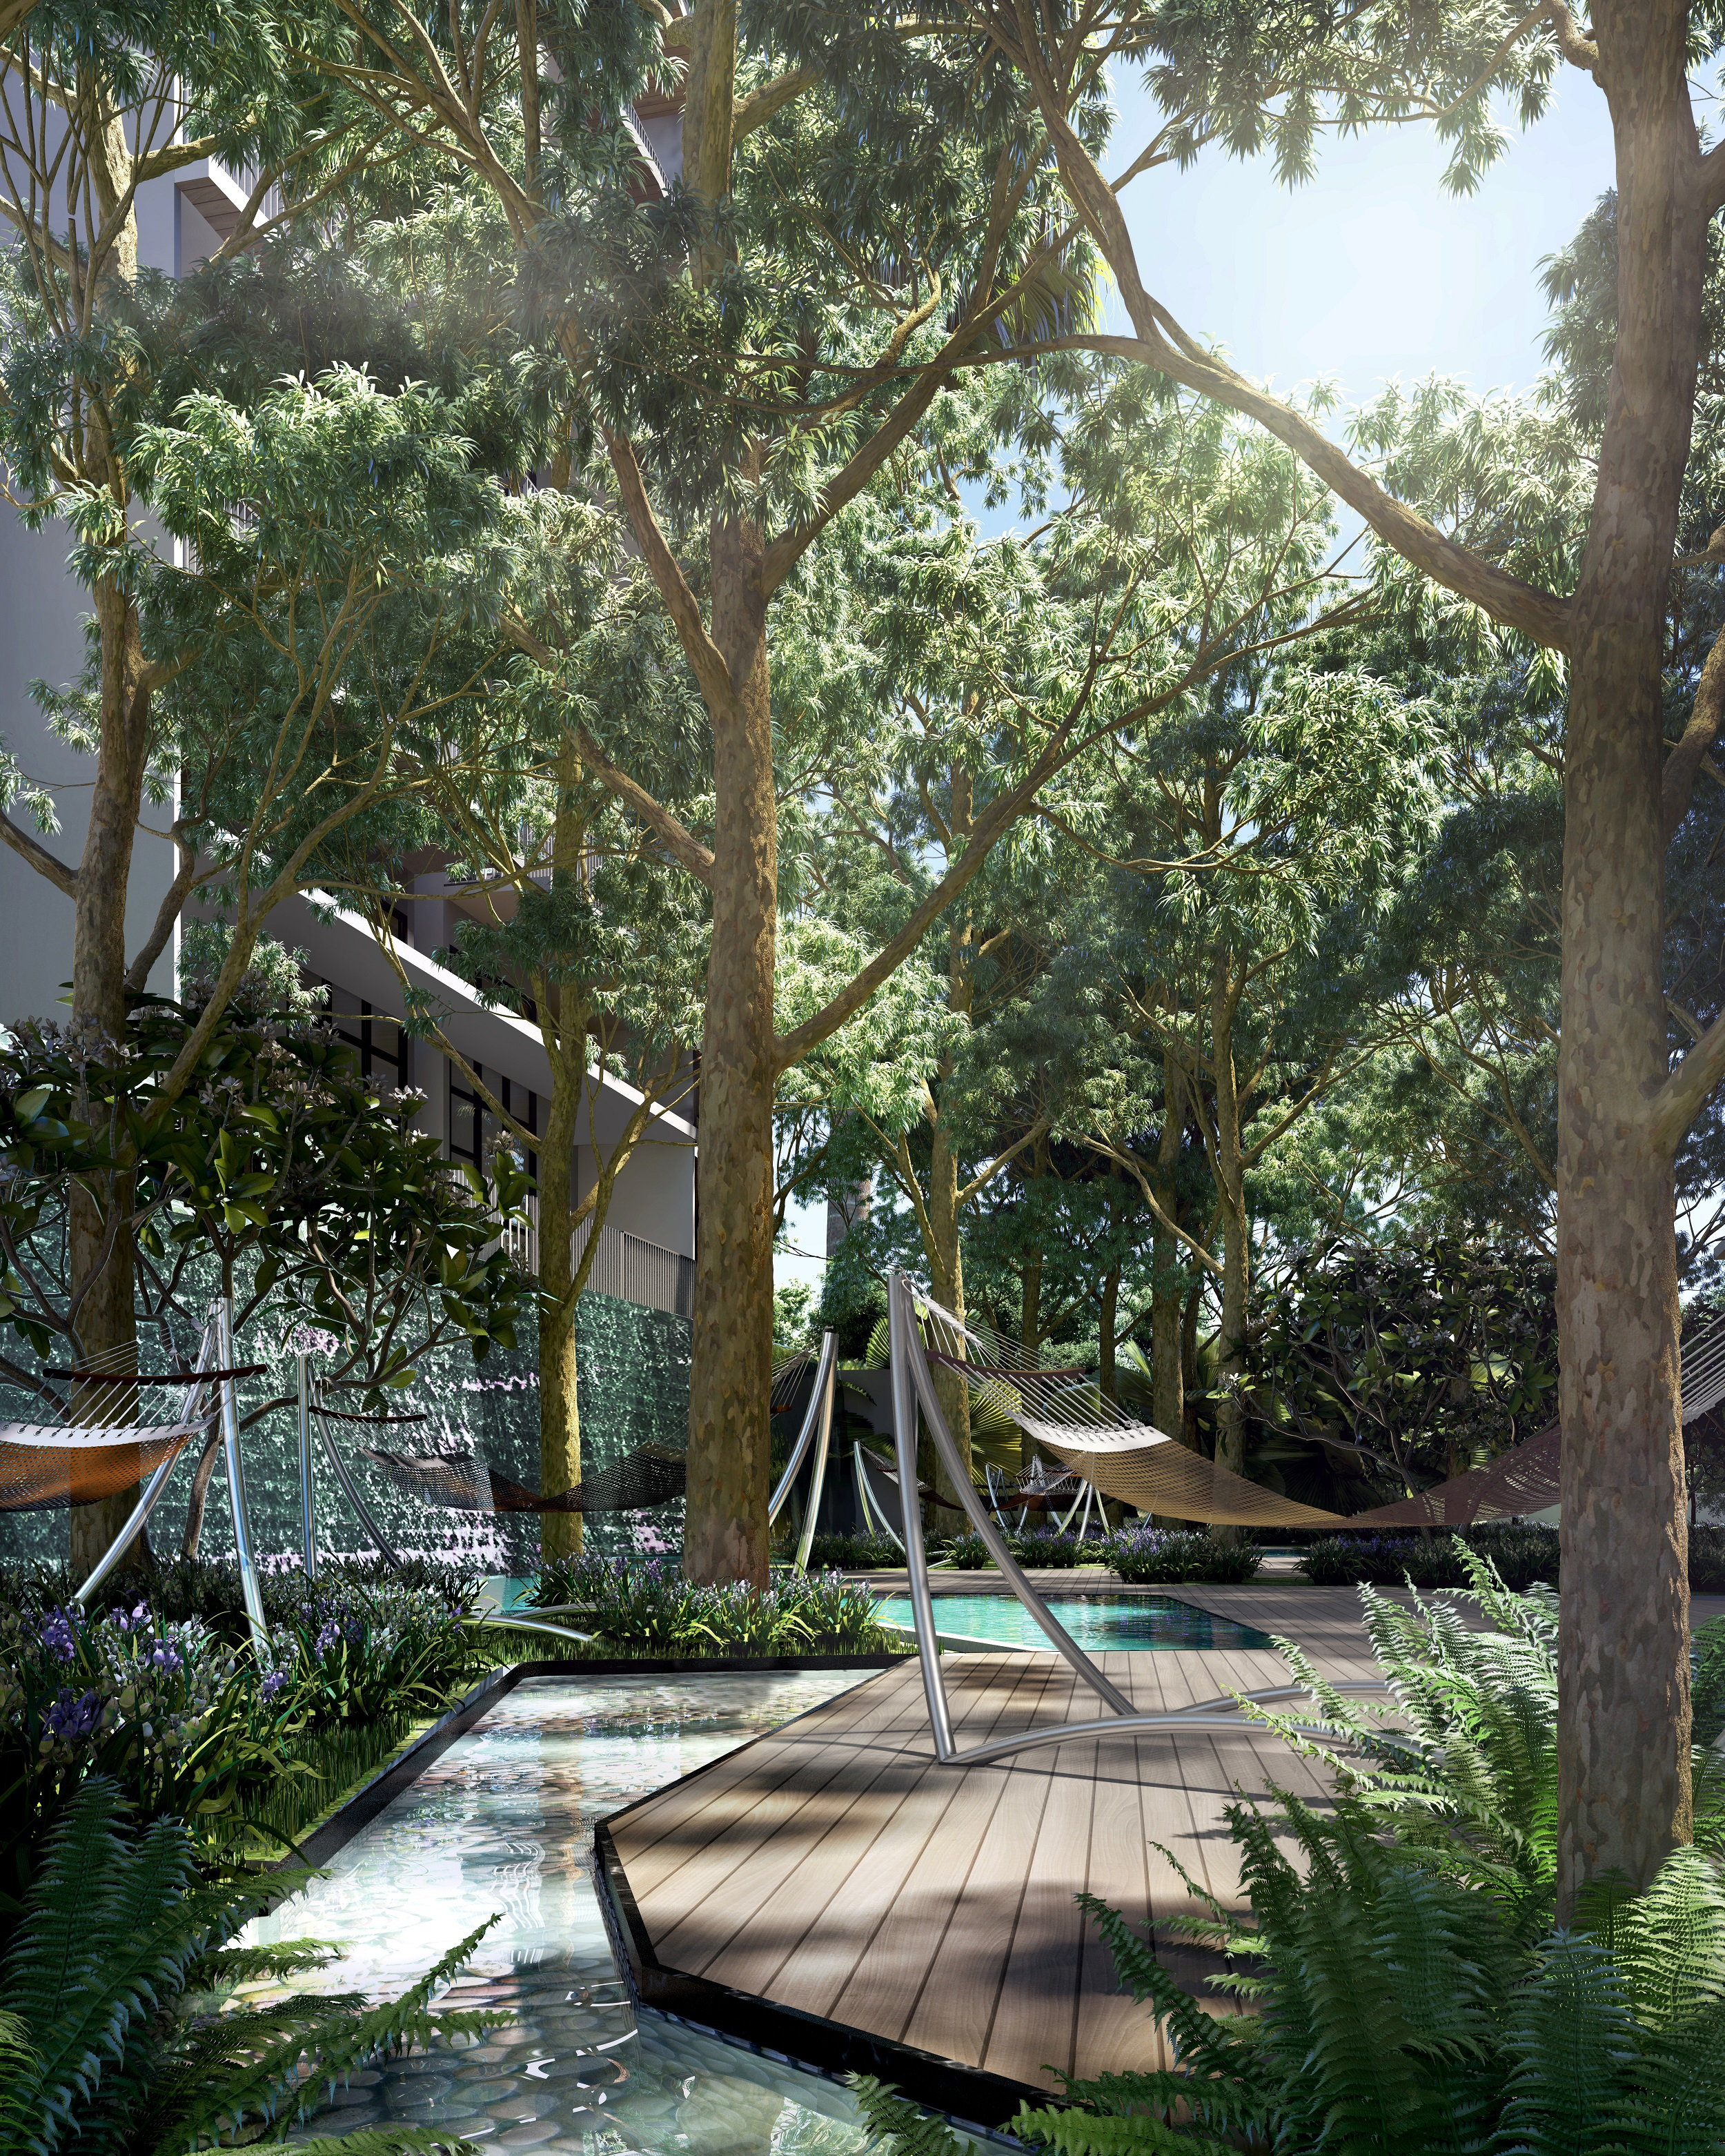 Bay Area Real Estate And Rentals: Daintree Residence: Verdant Development In Sought-after